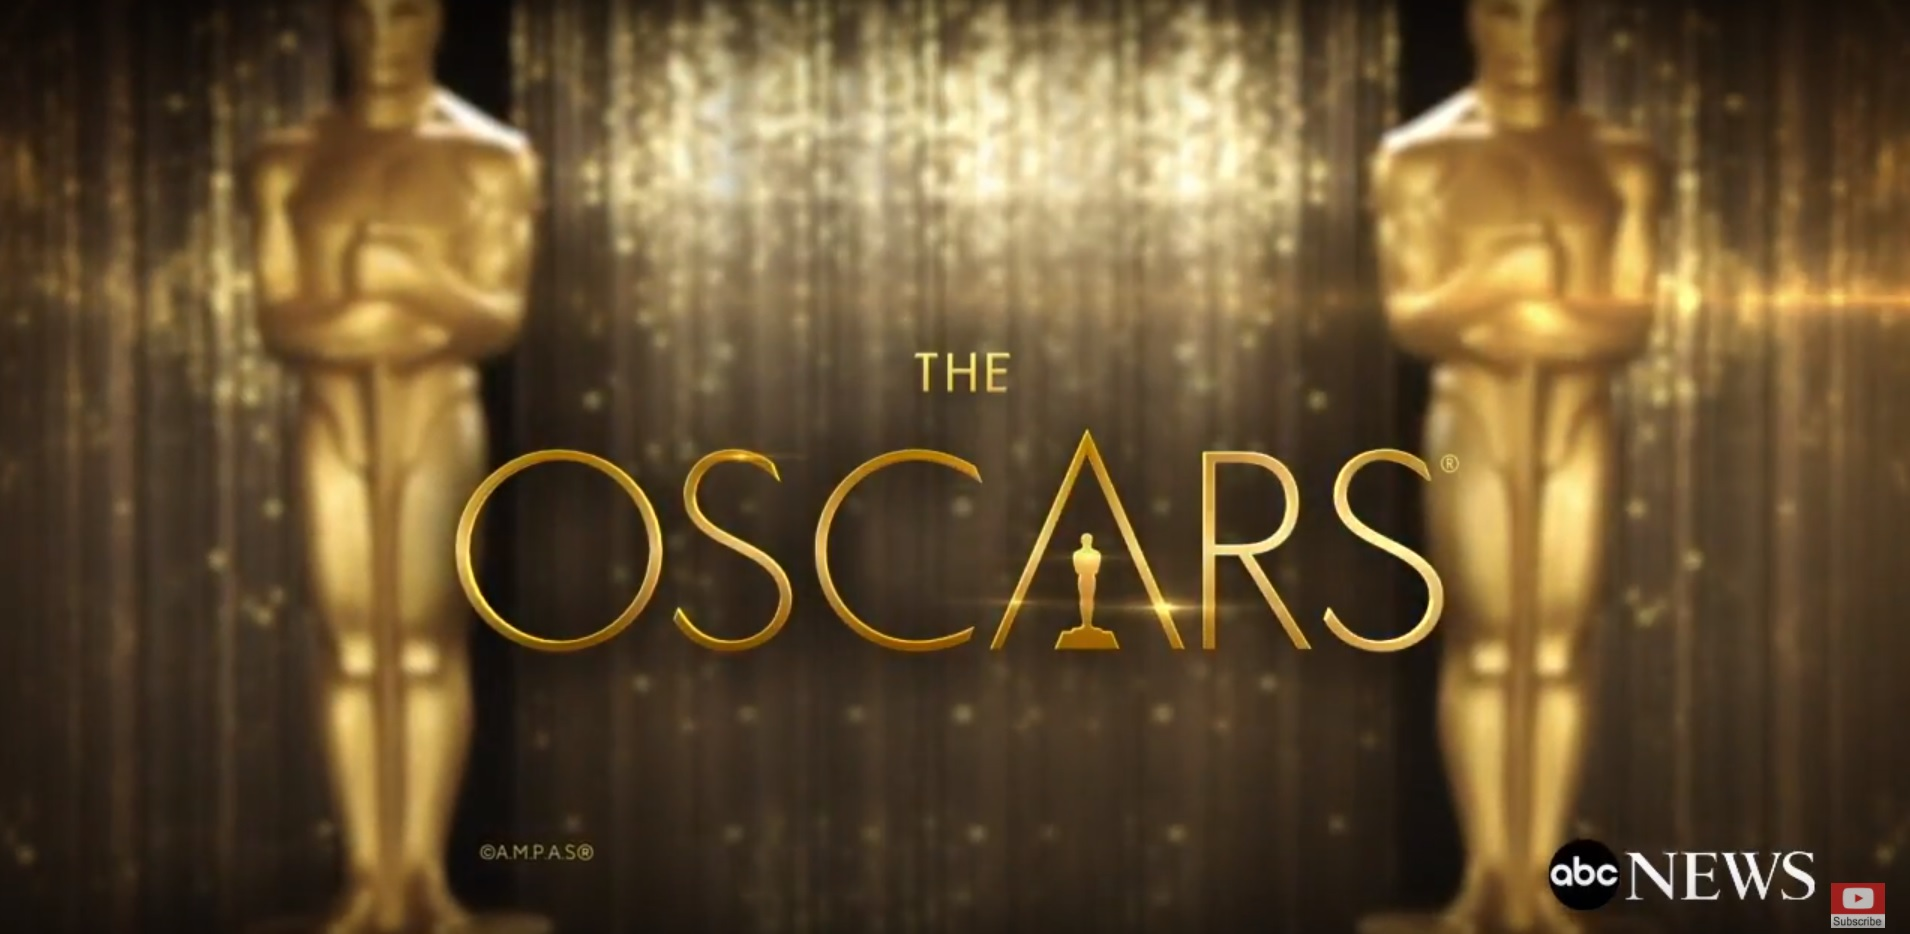 image: screencap/ABC 2018 Oscar Nominations for 90th Annual Academy Awards